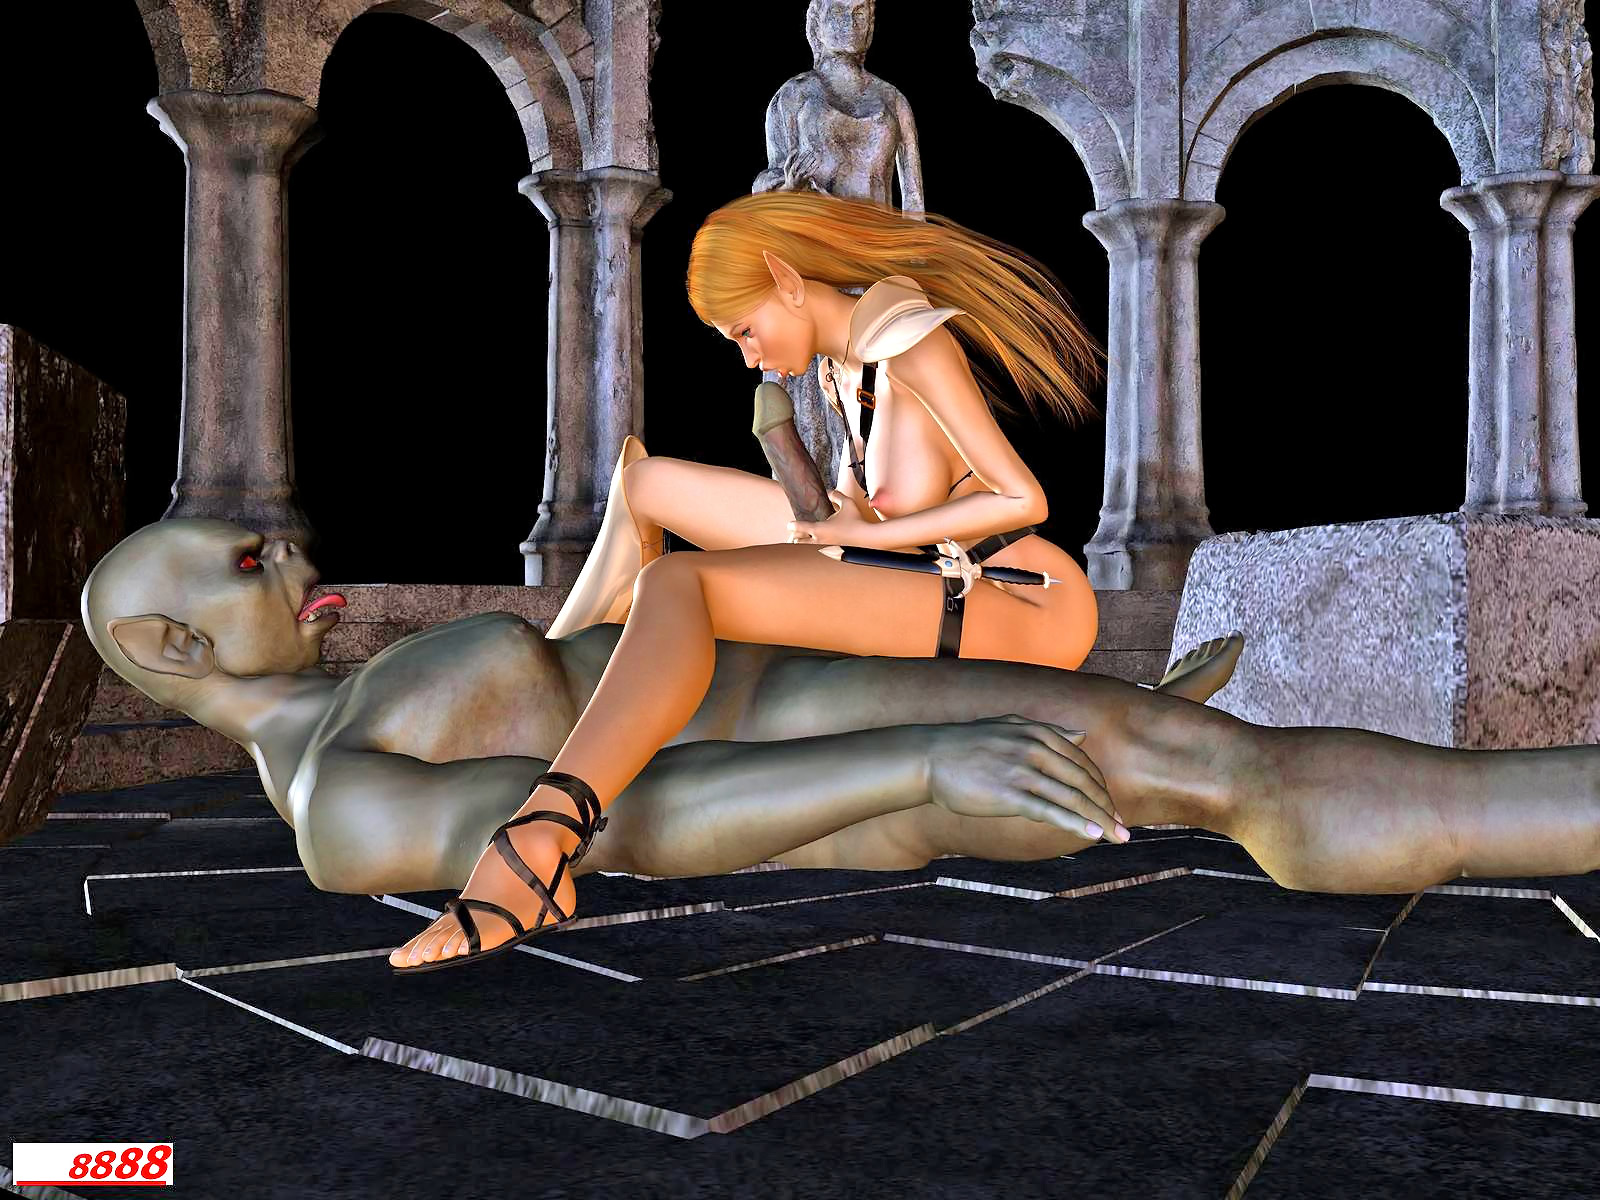 Elf princes bdsm video nsfw pic